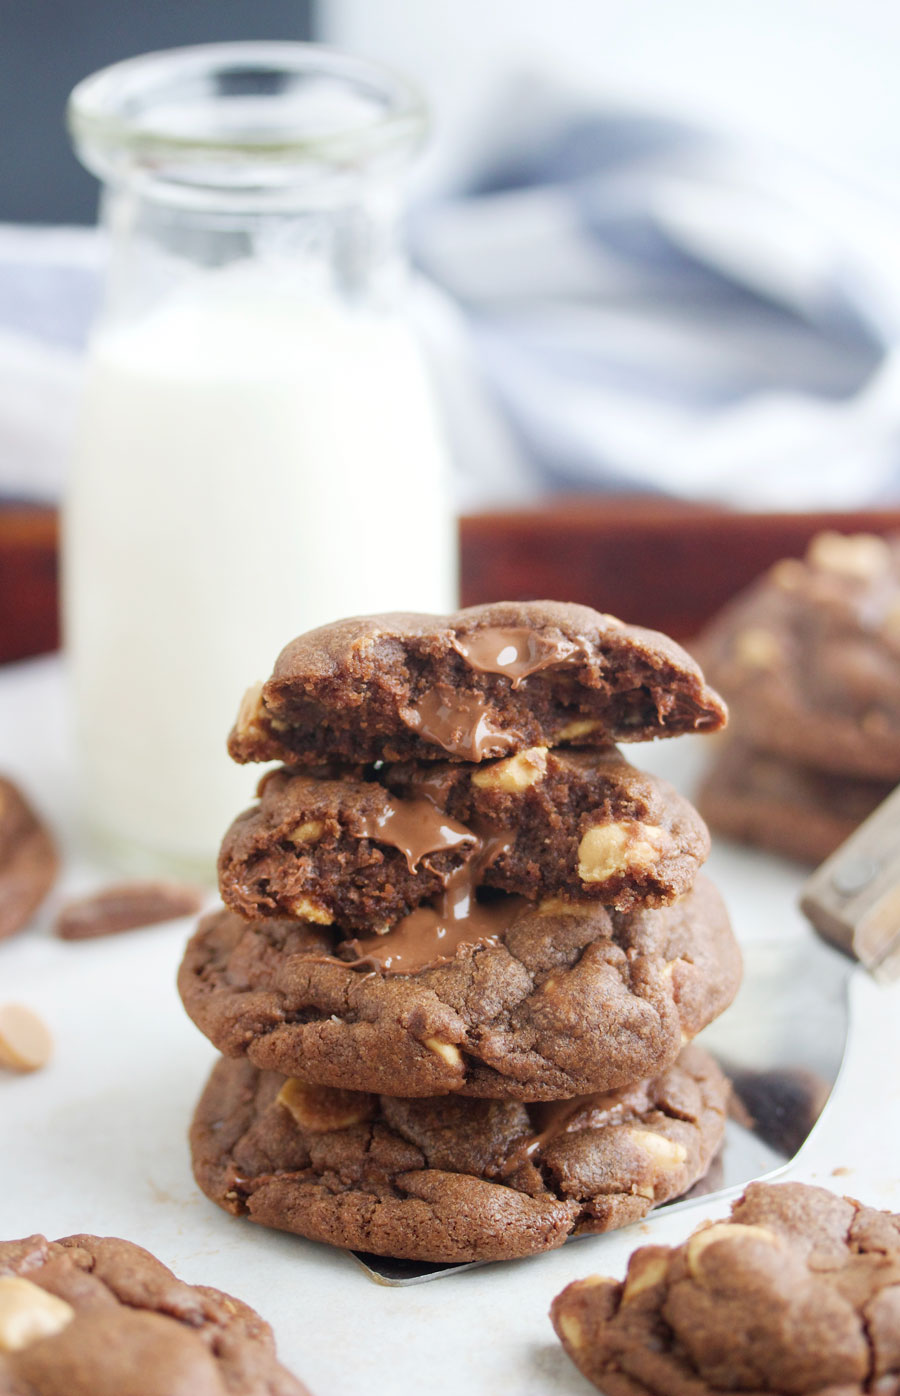 A stack of chocolate chocolate chunk peanut butter cookies with a glass of milk behind them.